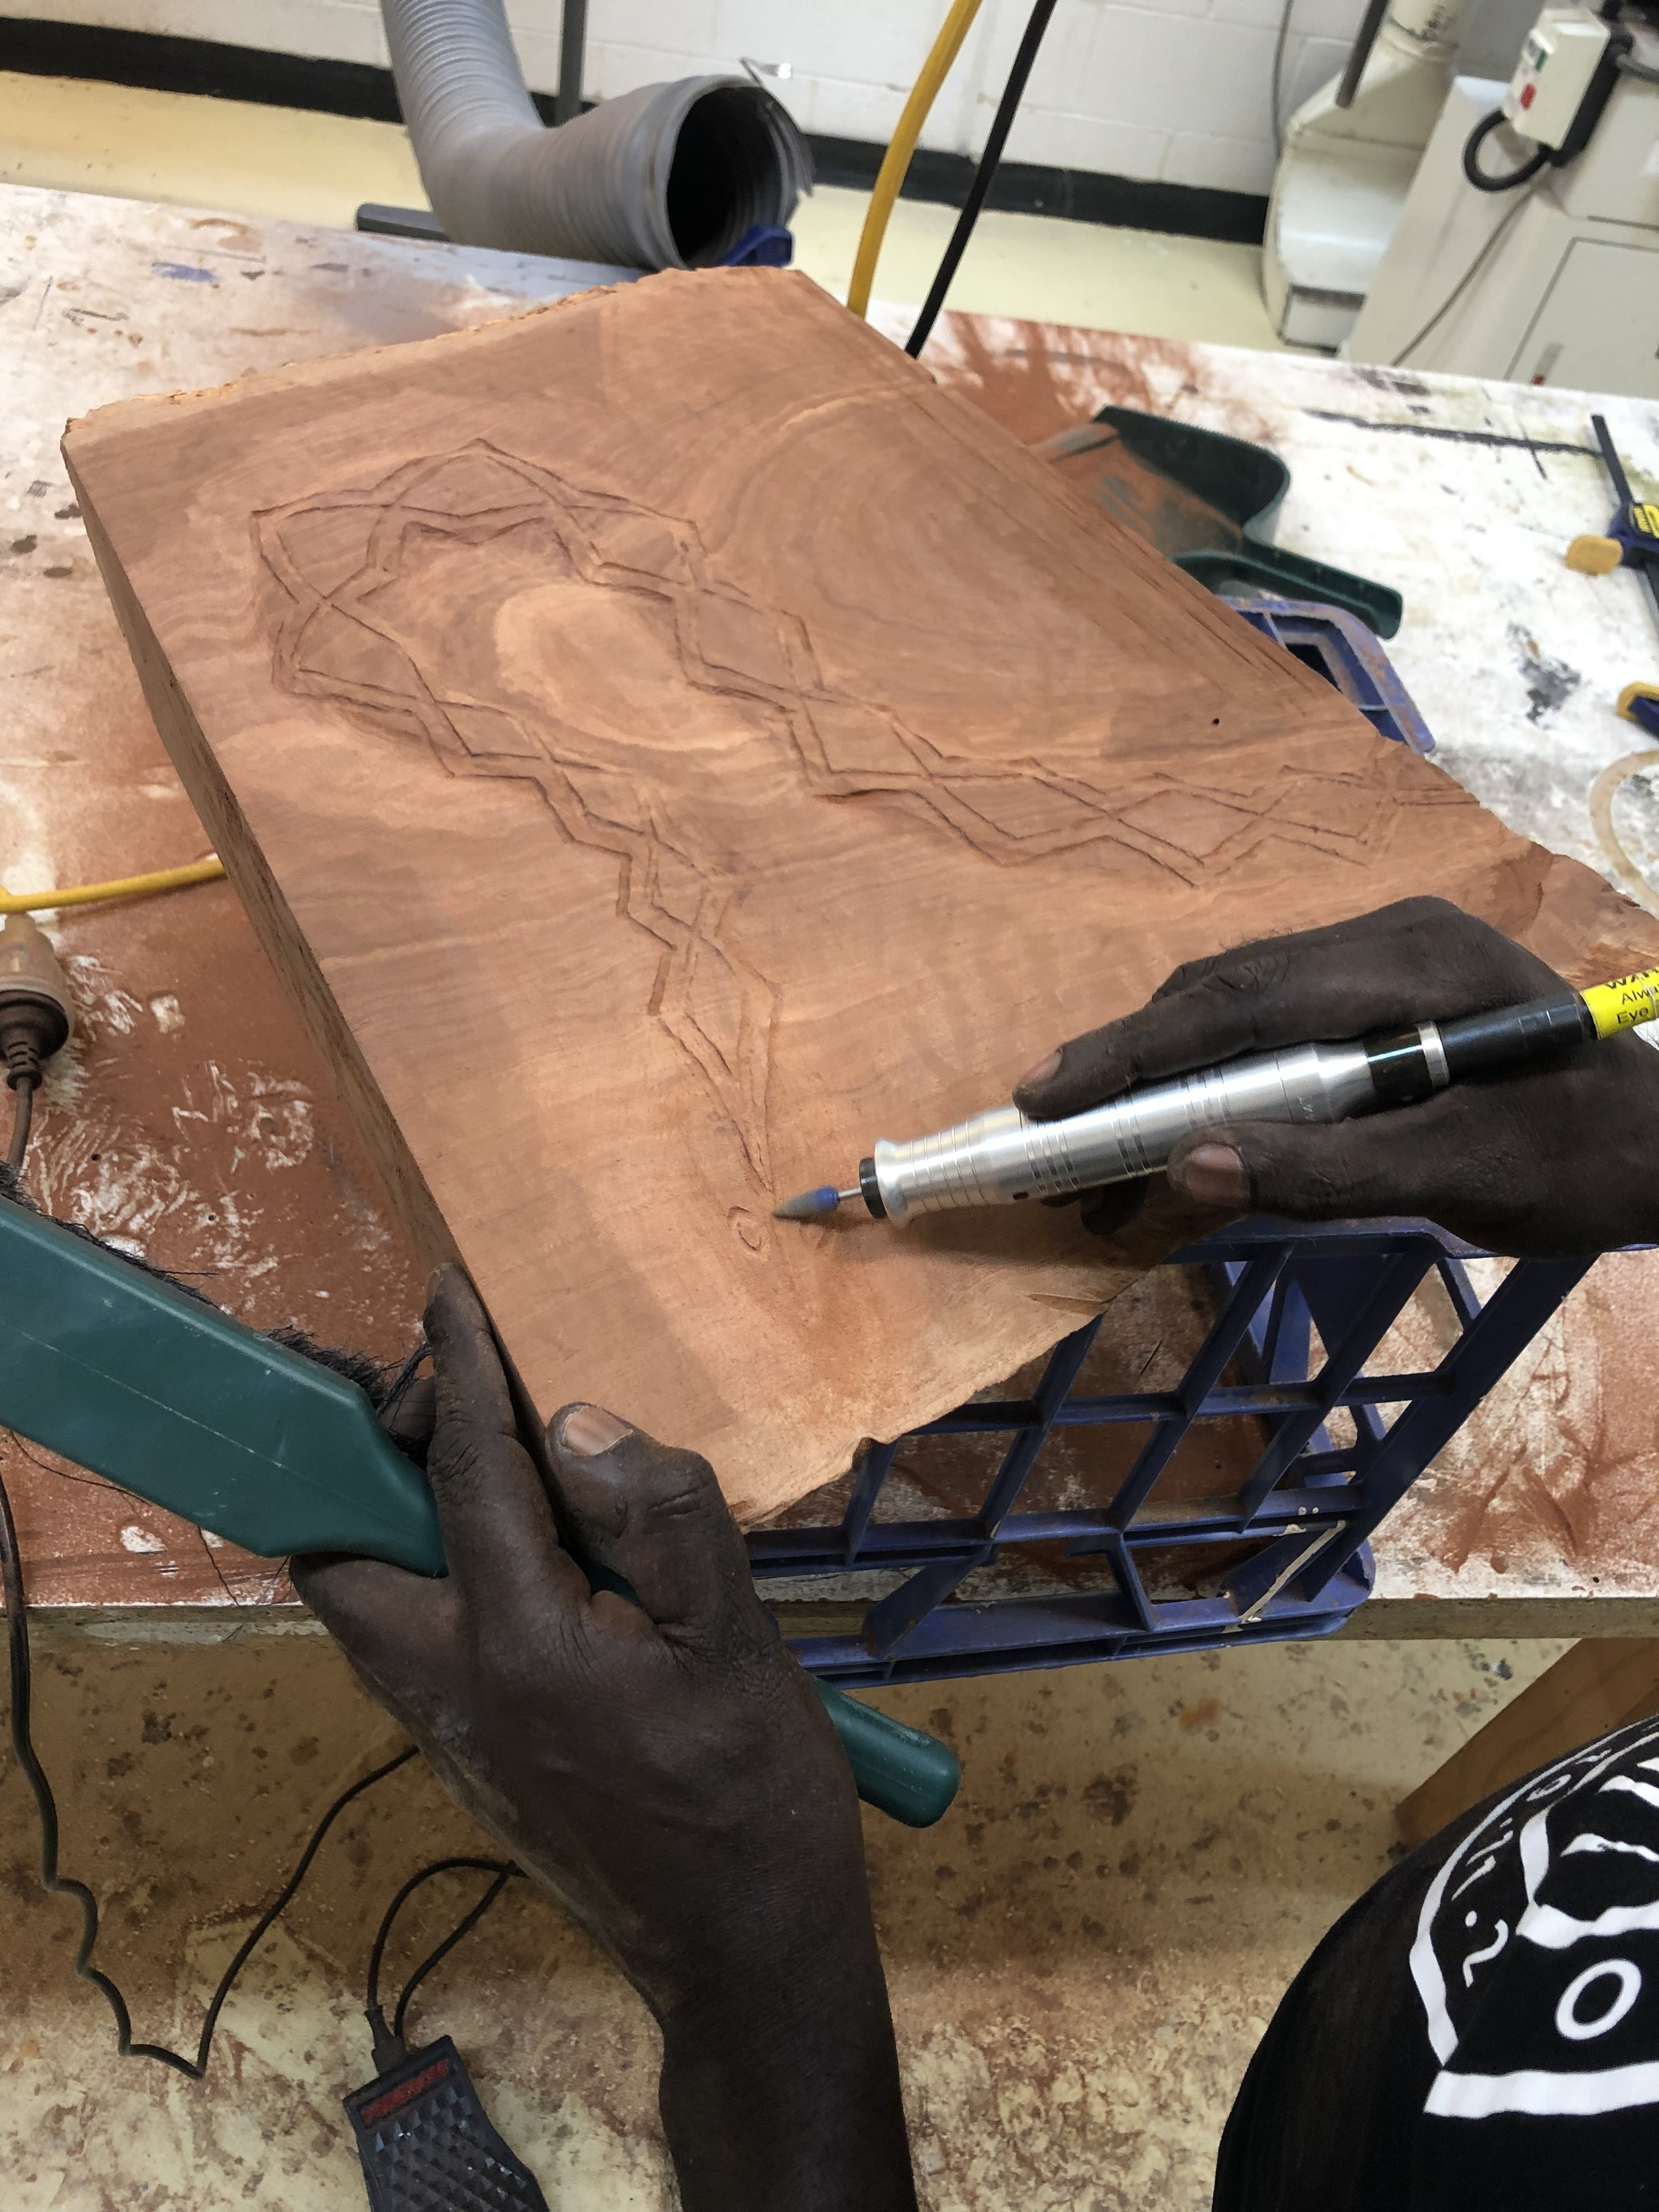 Test carving on River Red Gum. Photo courtesy JamFactory.